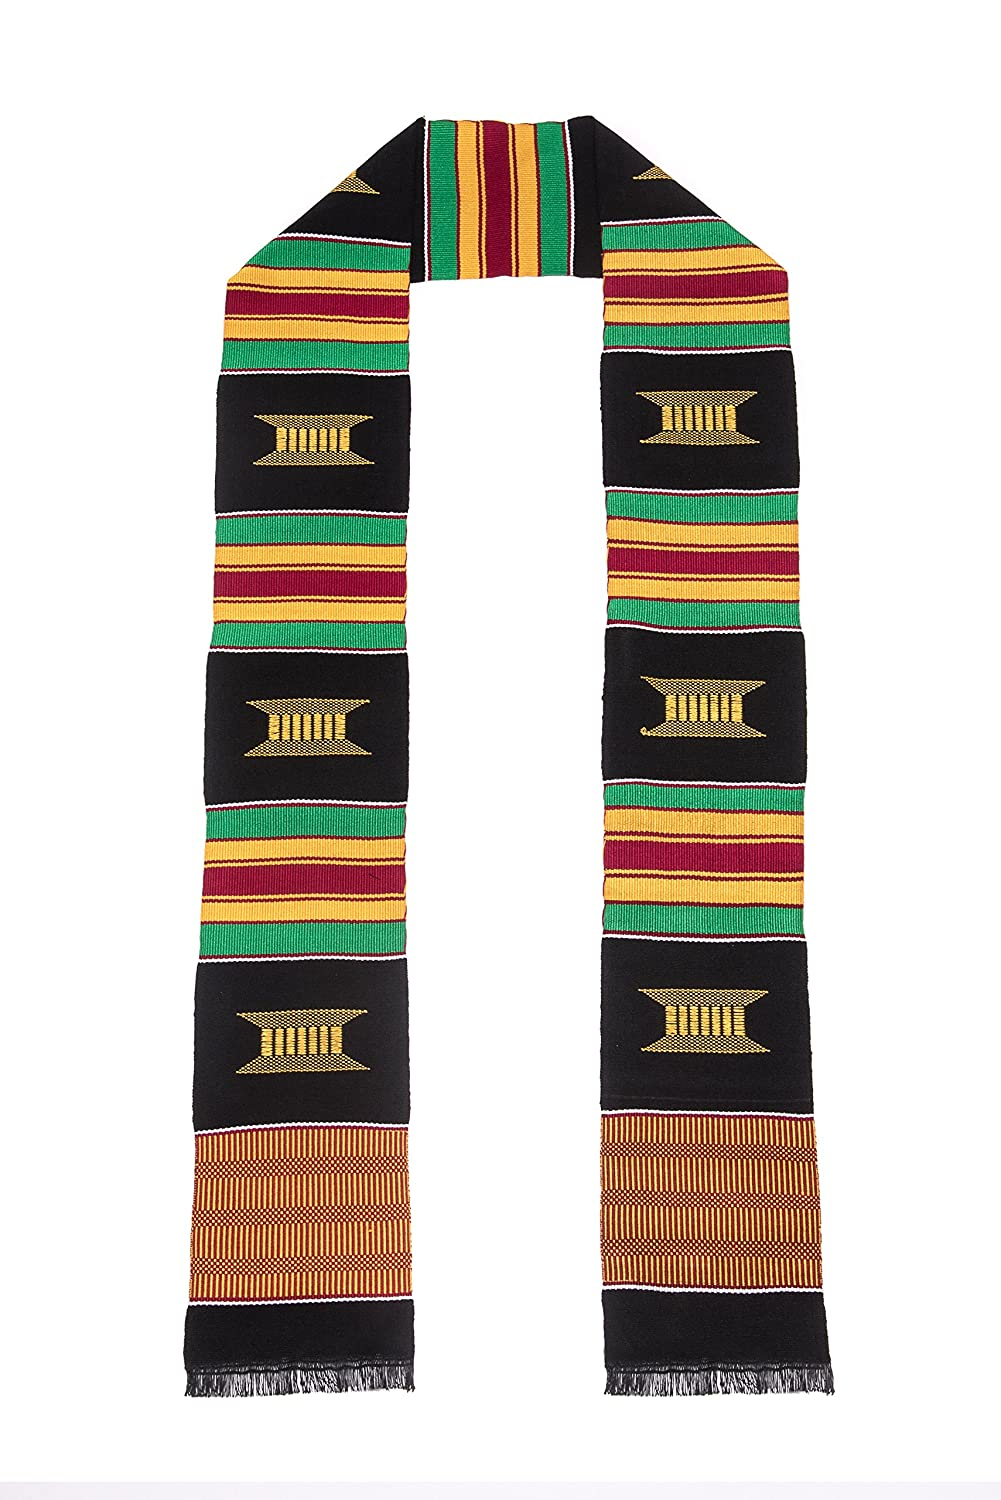 Traditional Kente Cloth Graduation Stole …